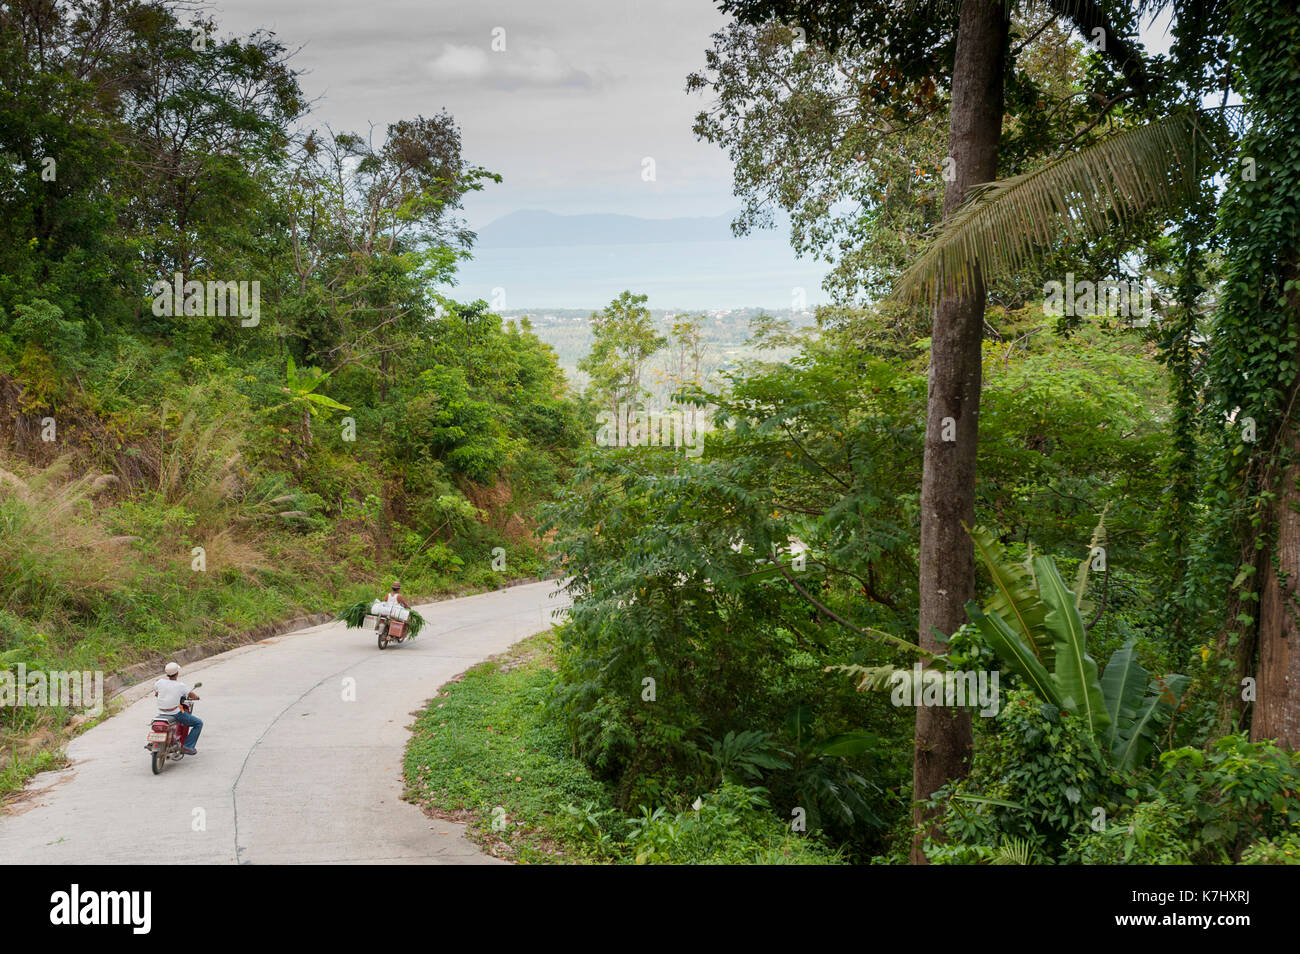 Motorbikes travel along a road on the island of Koh Samui, Thailand. - Stock Image